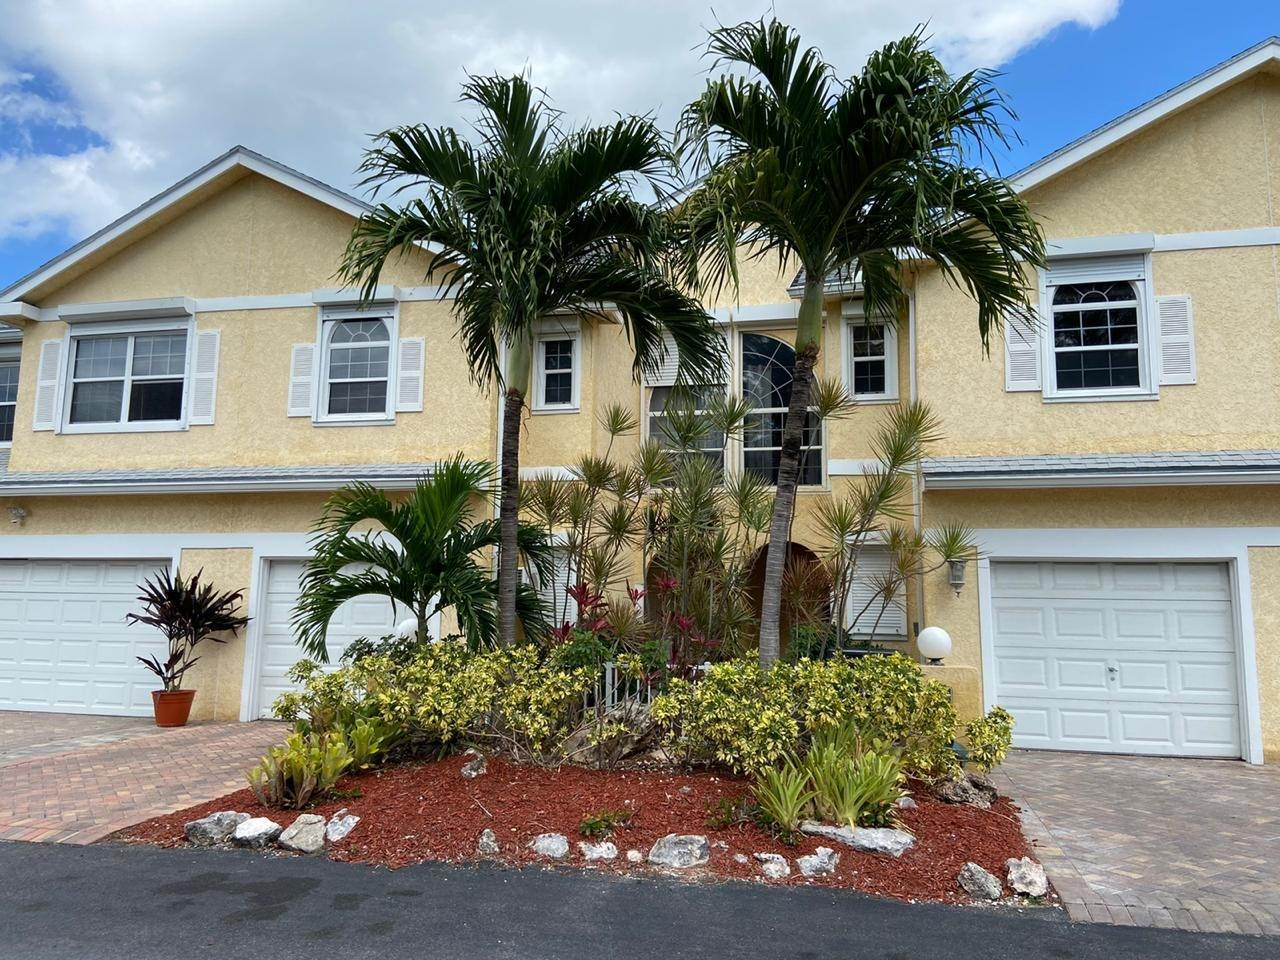 Co-op / Condo for Rent at Exclusive Gated Community #59 Nautica - MLS 40825 Nautica, Nassau And Paradise Island, Bahamas